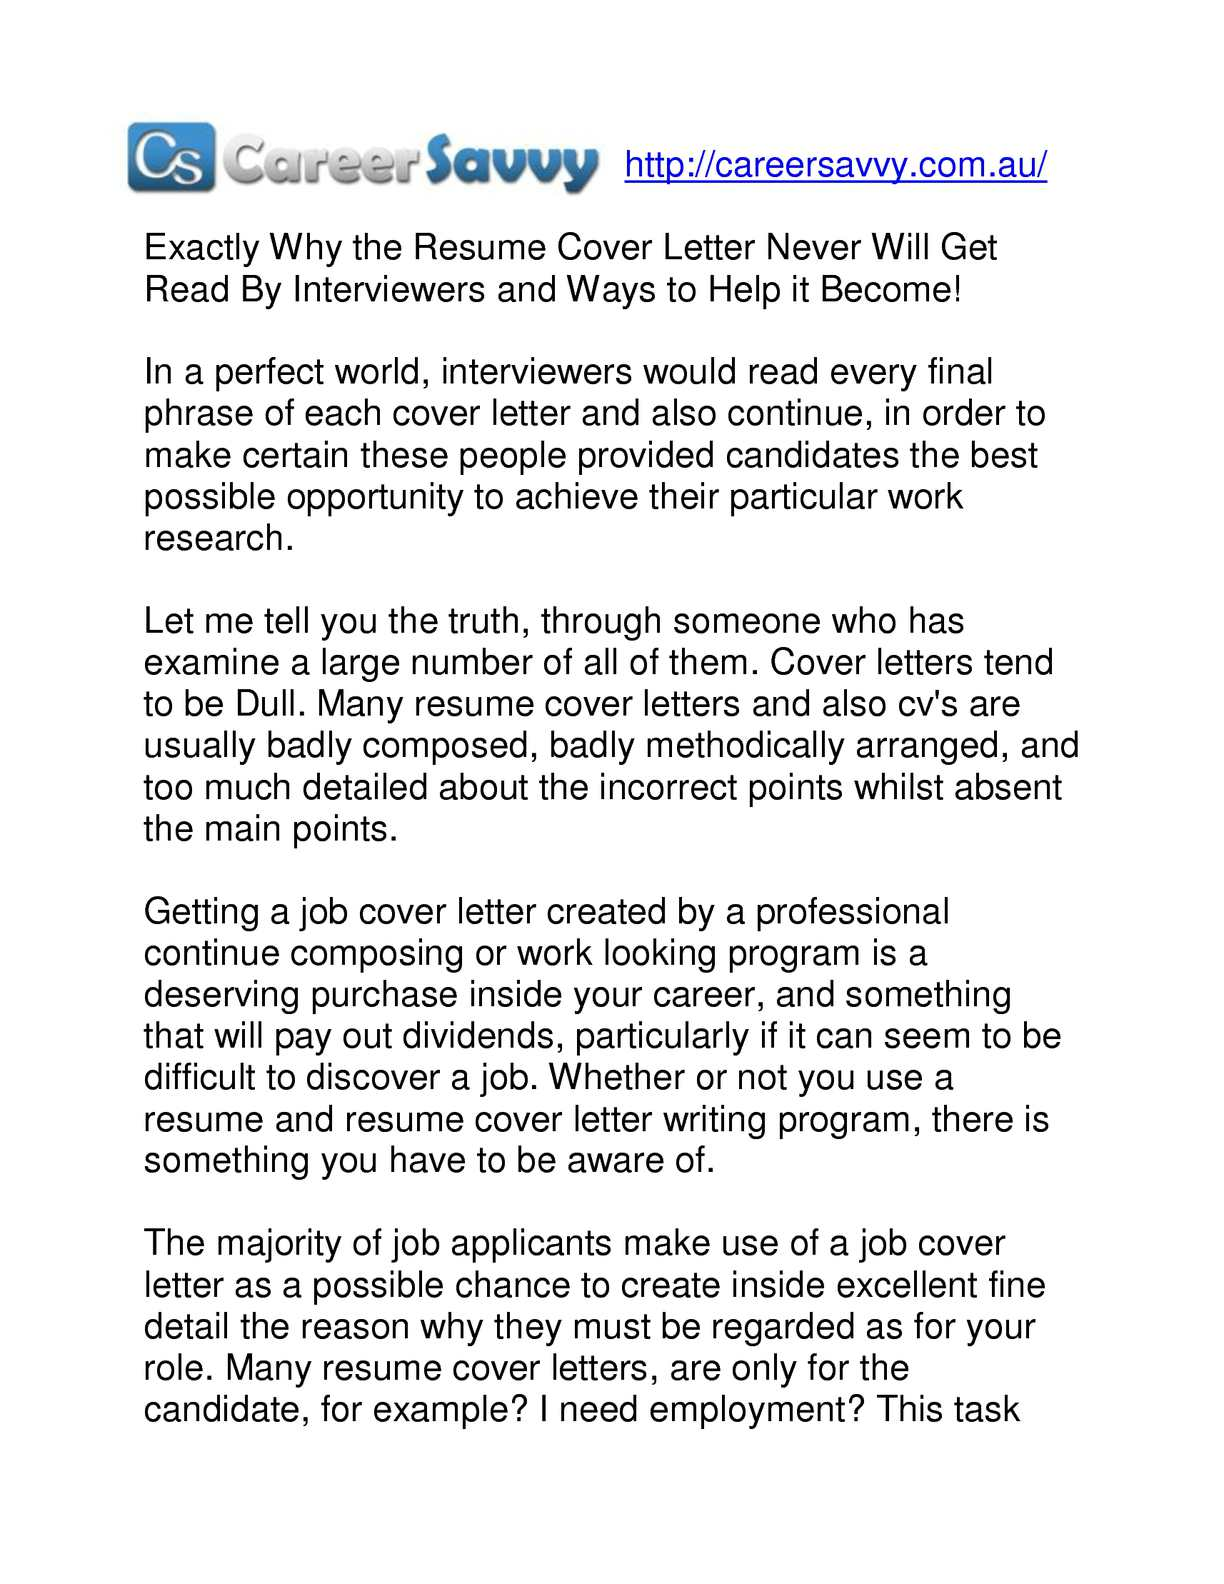 Calaméo - Exactly why the resume cover letter never will get ...